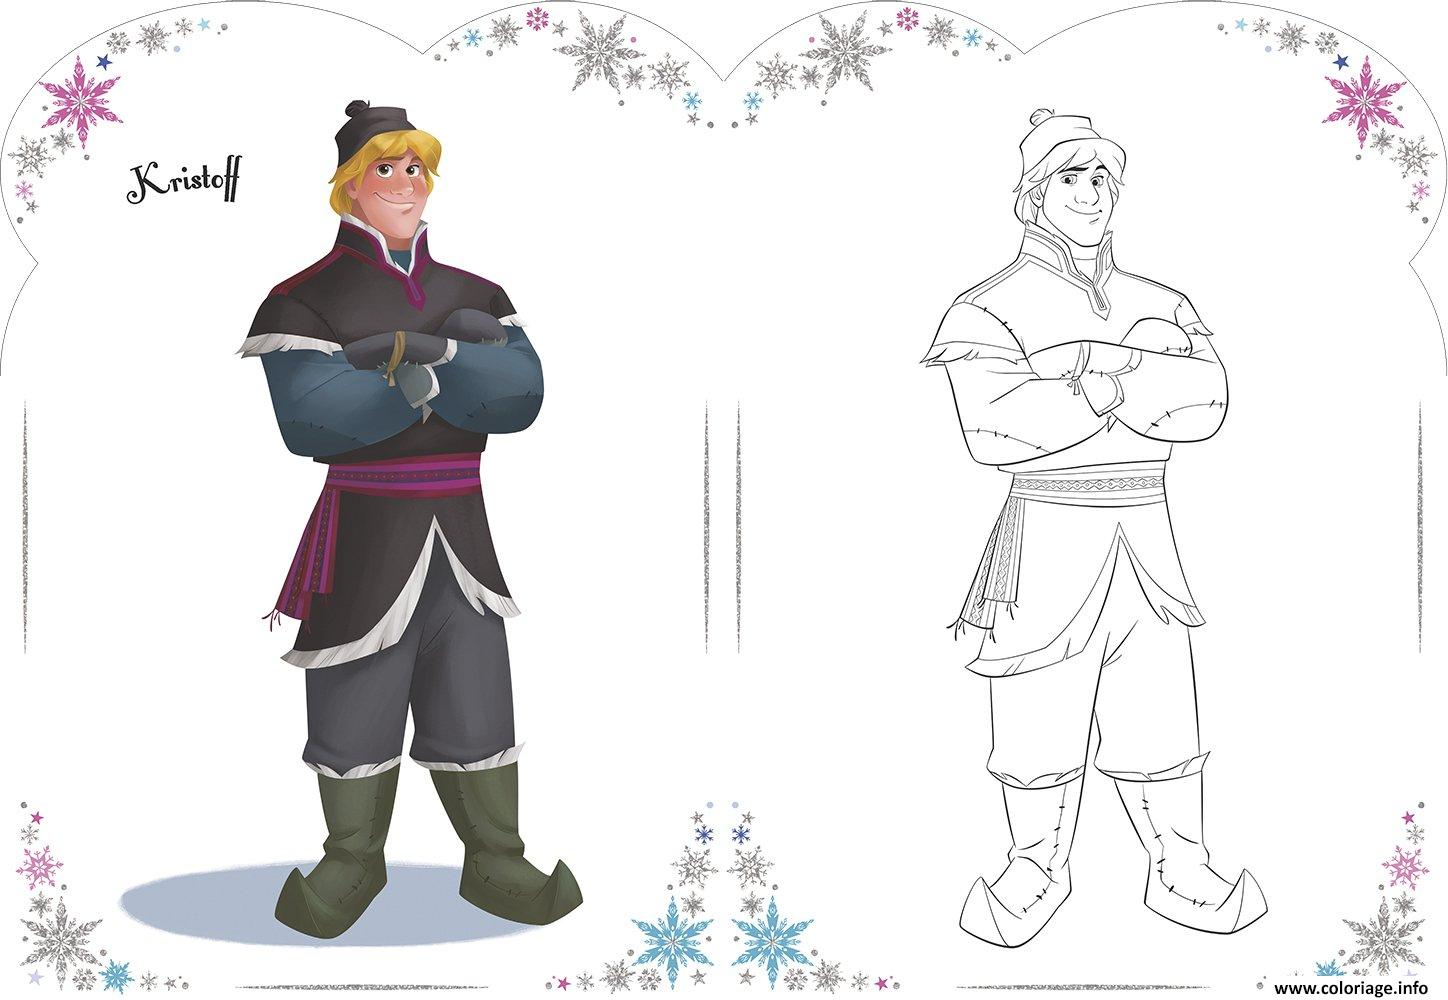 coloriage kristoff de la reine des neiges dessin. Black Bedroom Furniture Sets. Home Design Ideas